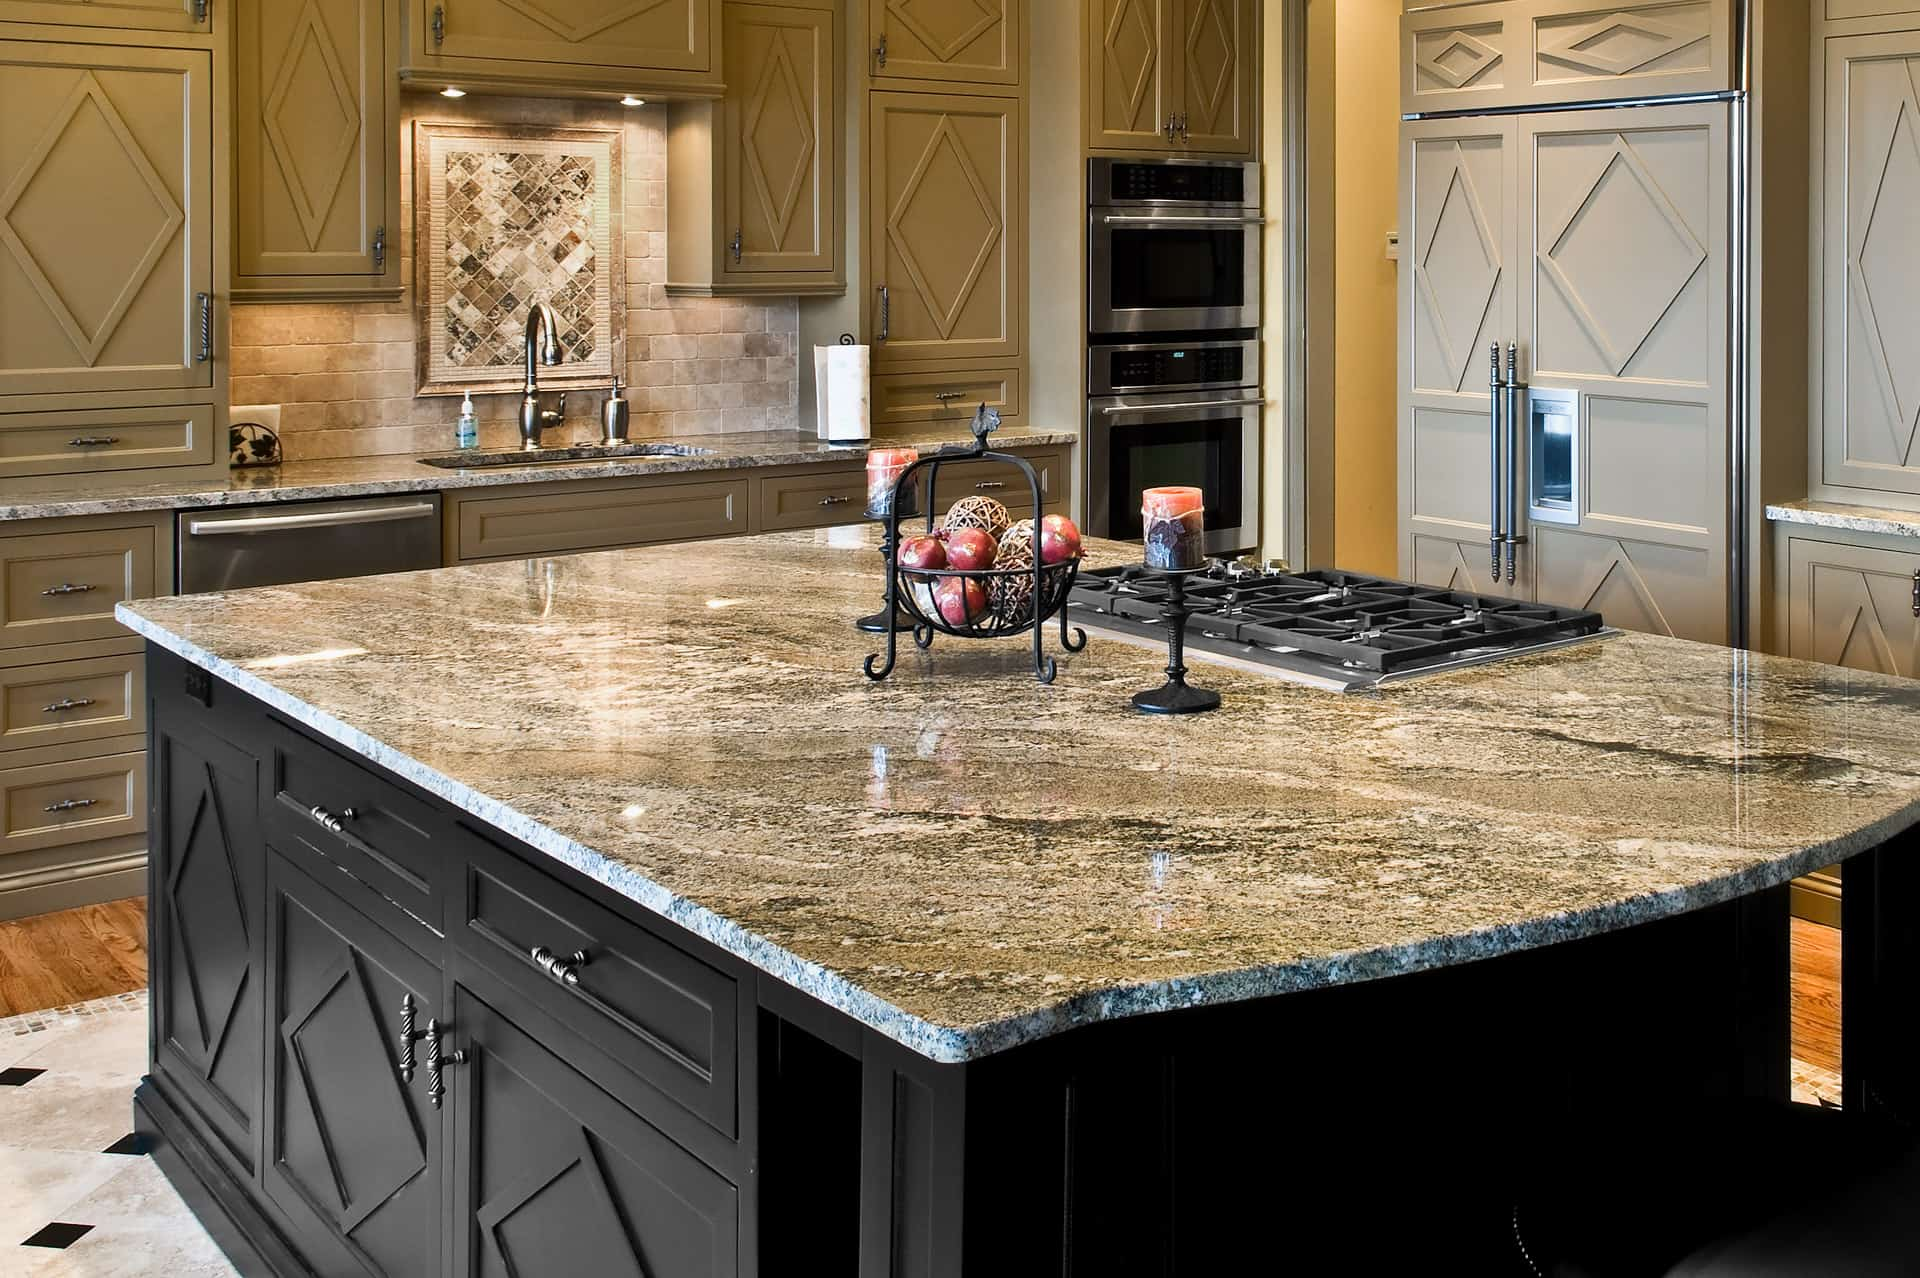 The Benefits of Engineered Stone Countertops